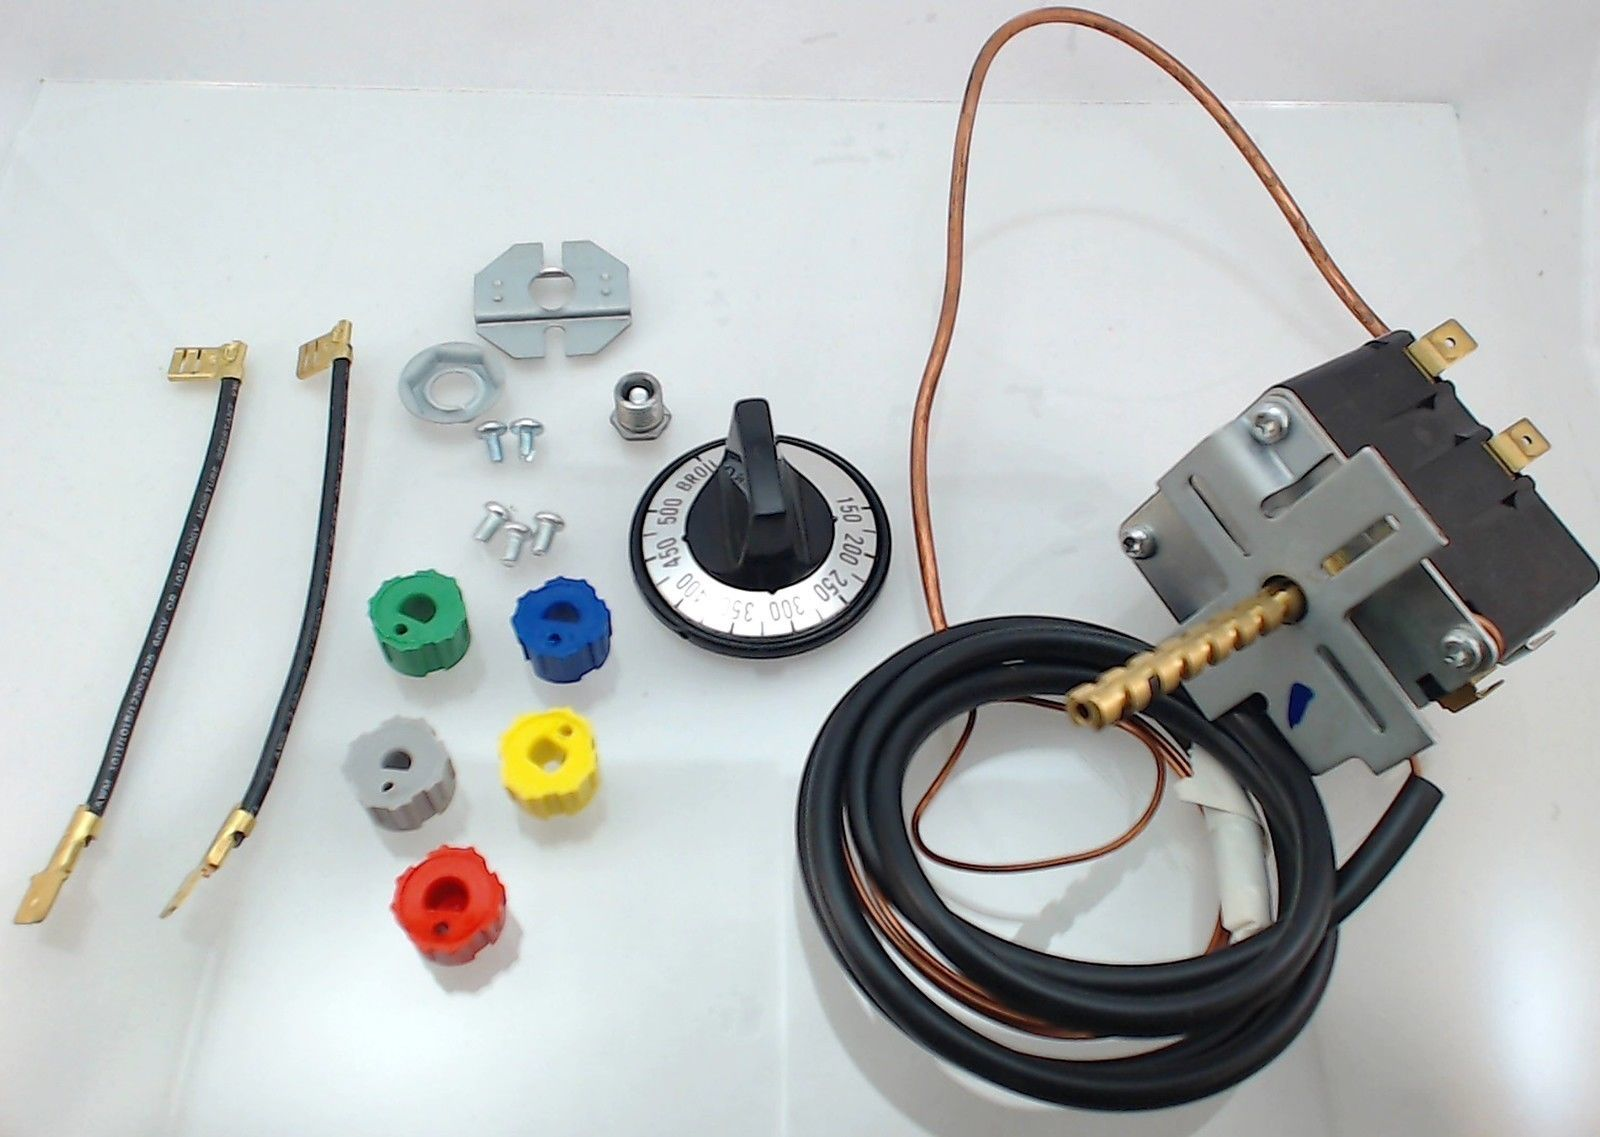 Er6700s0011 Erp Universal Electric Oven Thermostat 6700s0011